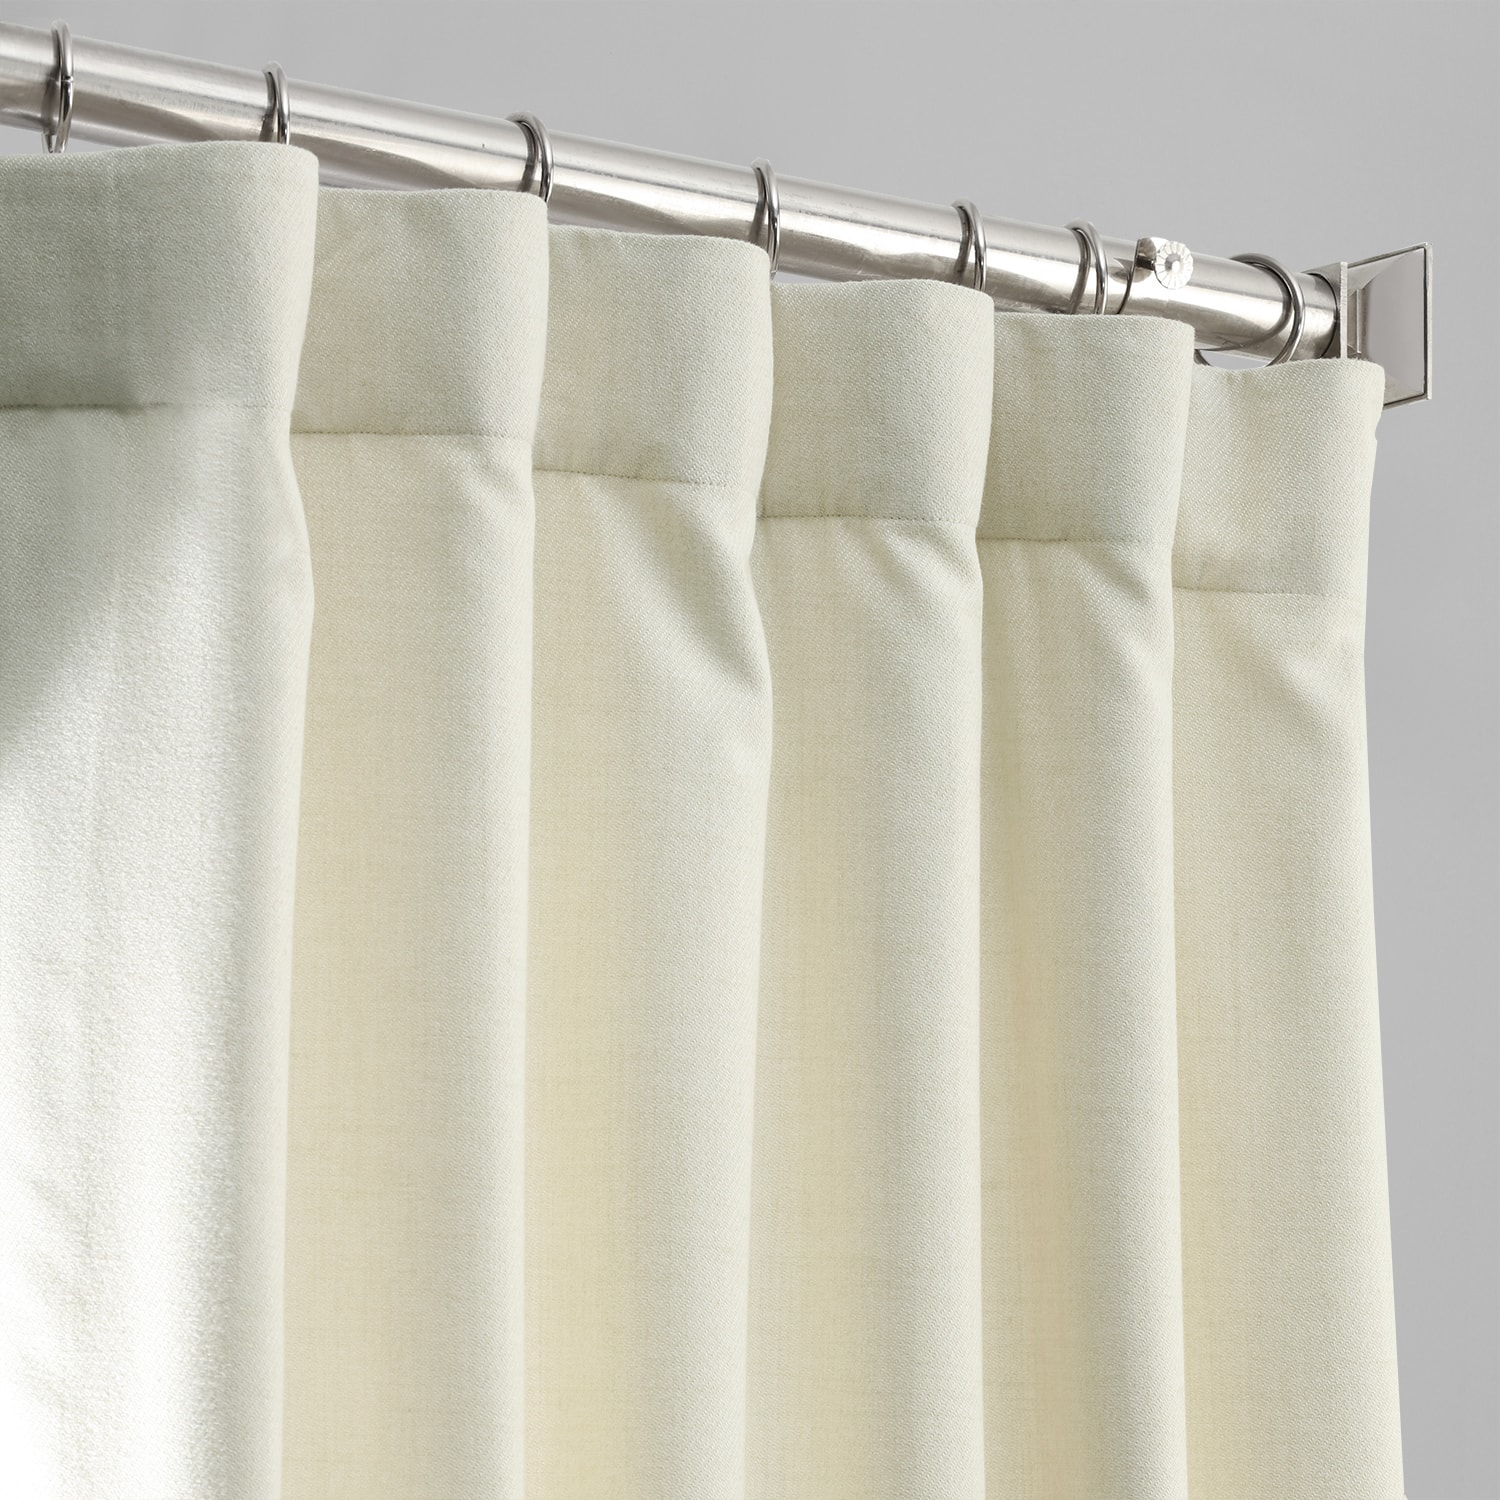 Creamy Ivory Thermal Room Darkening Heathered Italian Woolen Weave Curtain